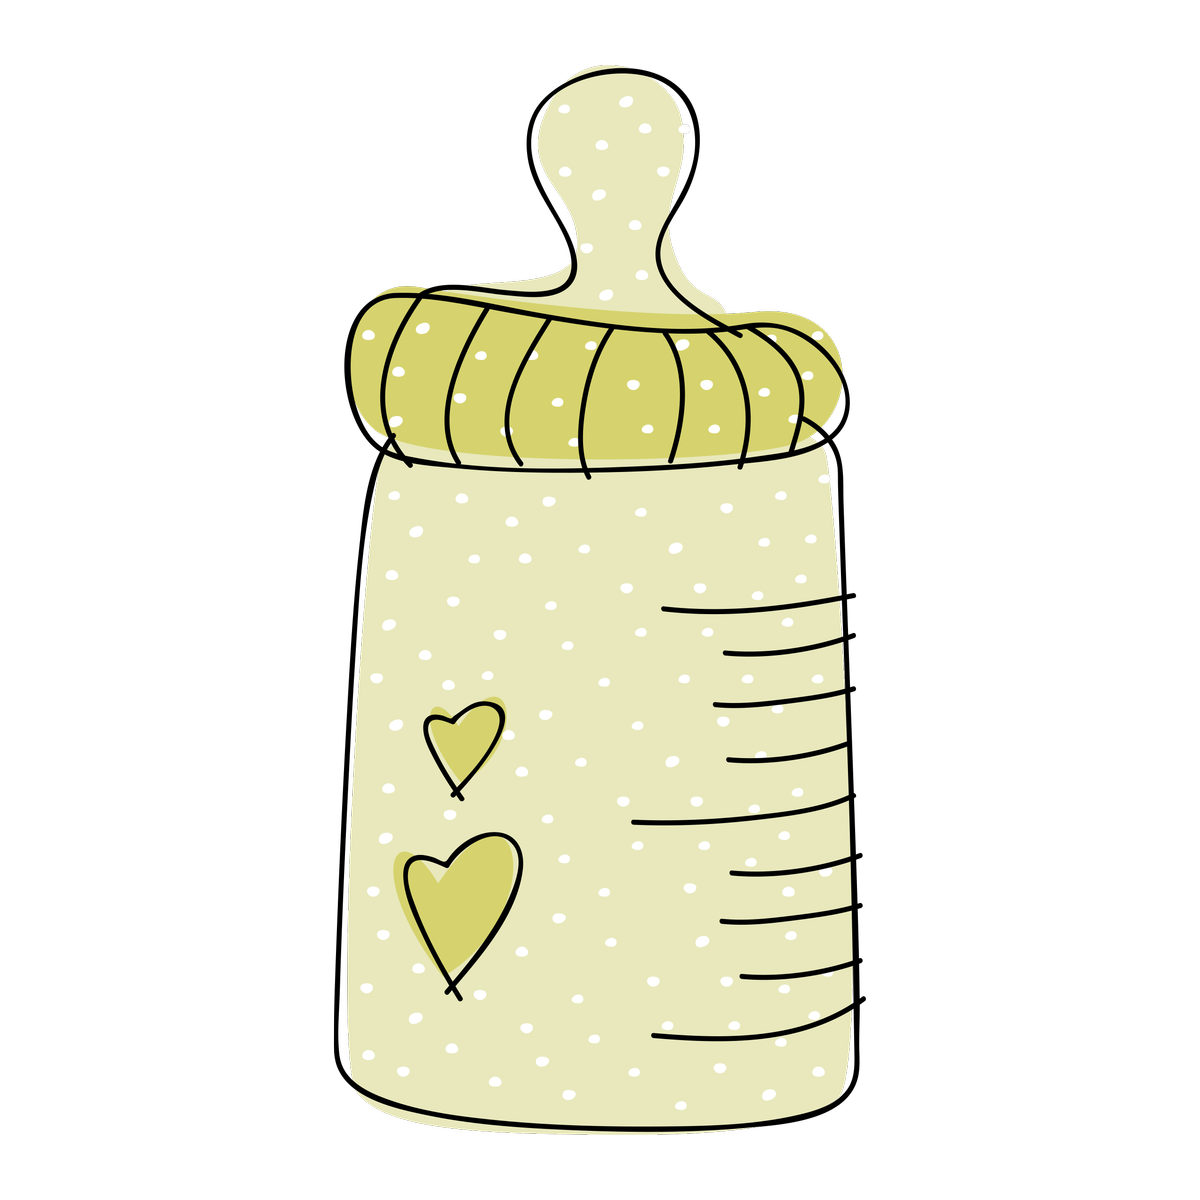 Free Downloadable Baby Bottle Clipart.